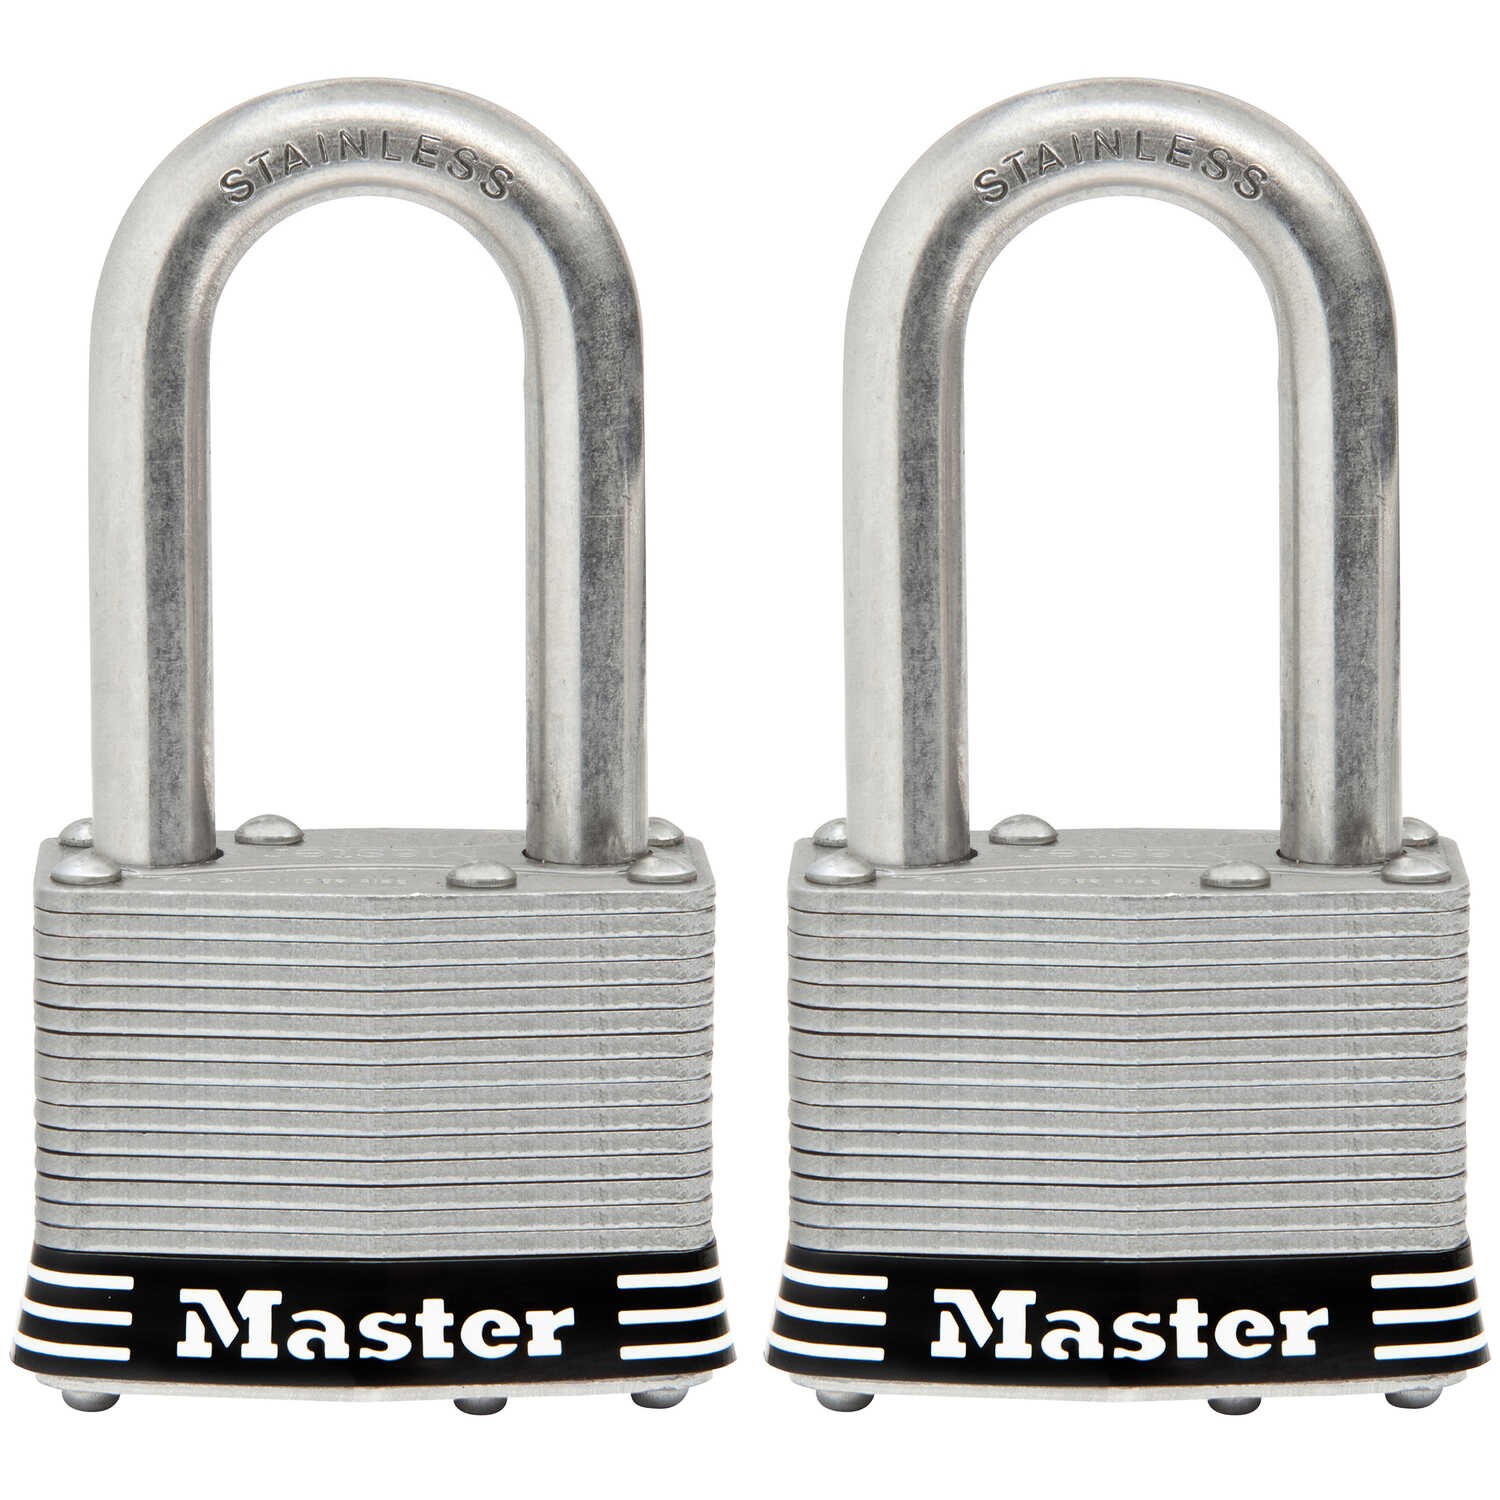 Master Lock  1.75 in. W Stainless Steel  4-Pin Tumbler  2 pk Laminated Padlock  Keyed Alike